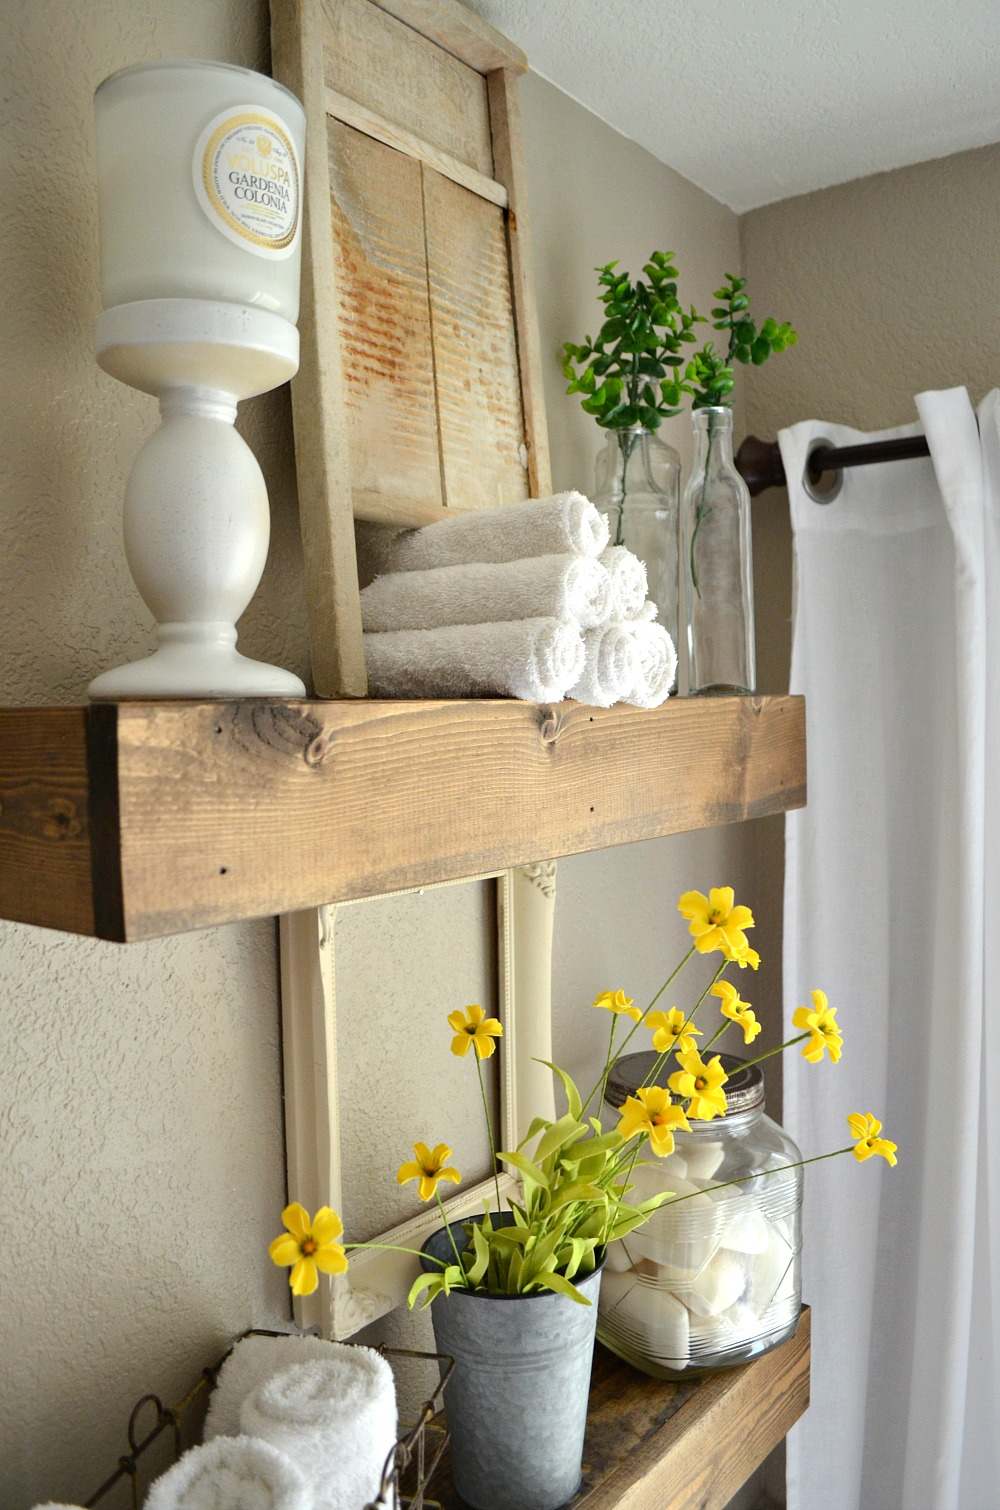 Farmhouse Style Bathroom Decor : How to easily mix vintage and modern decor little